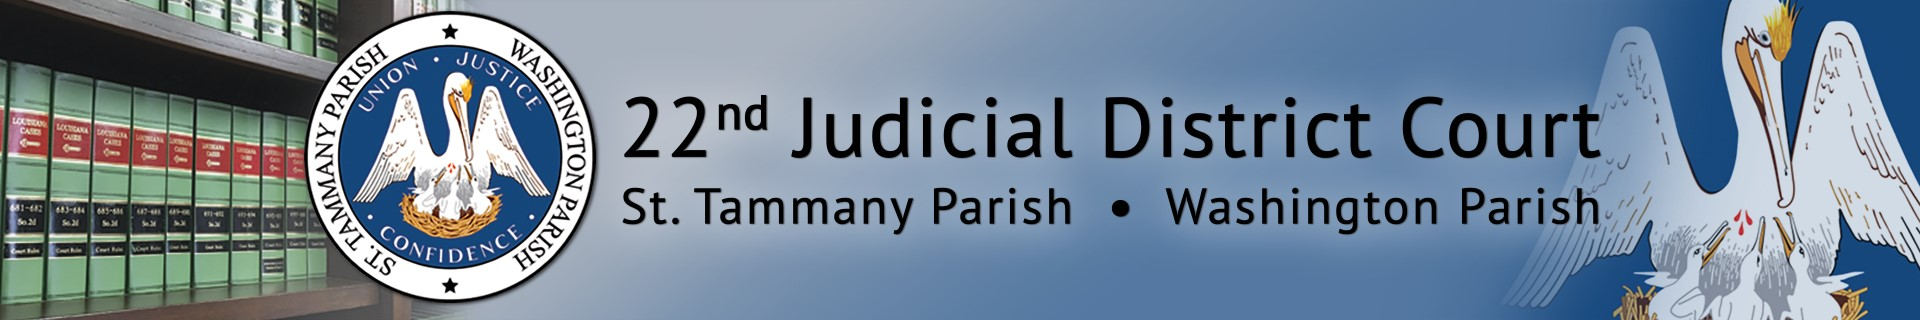 22nd Judicial District Court